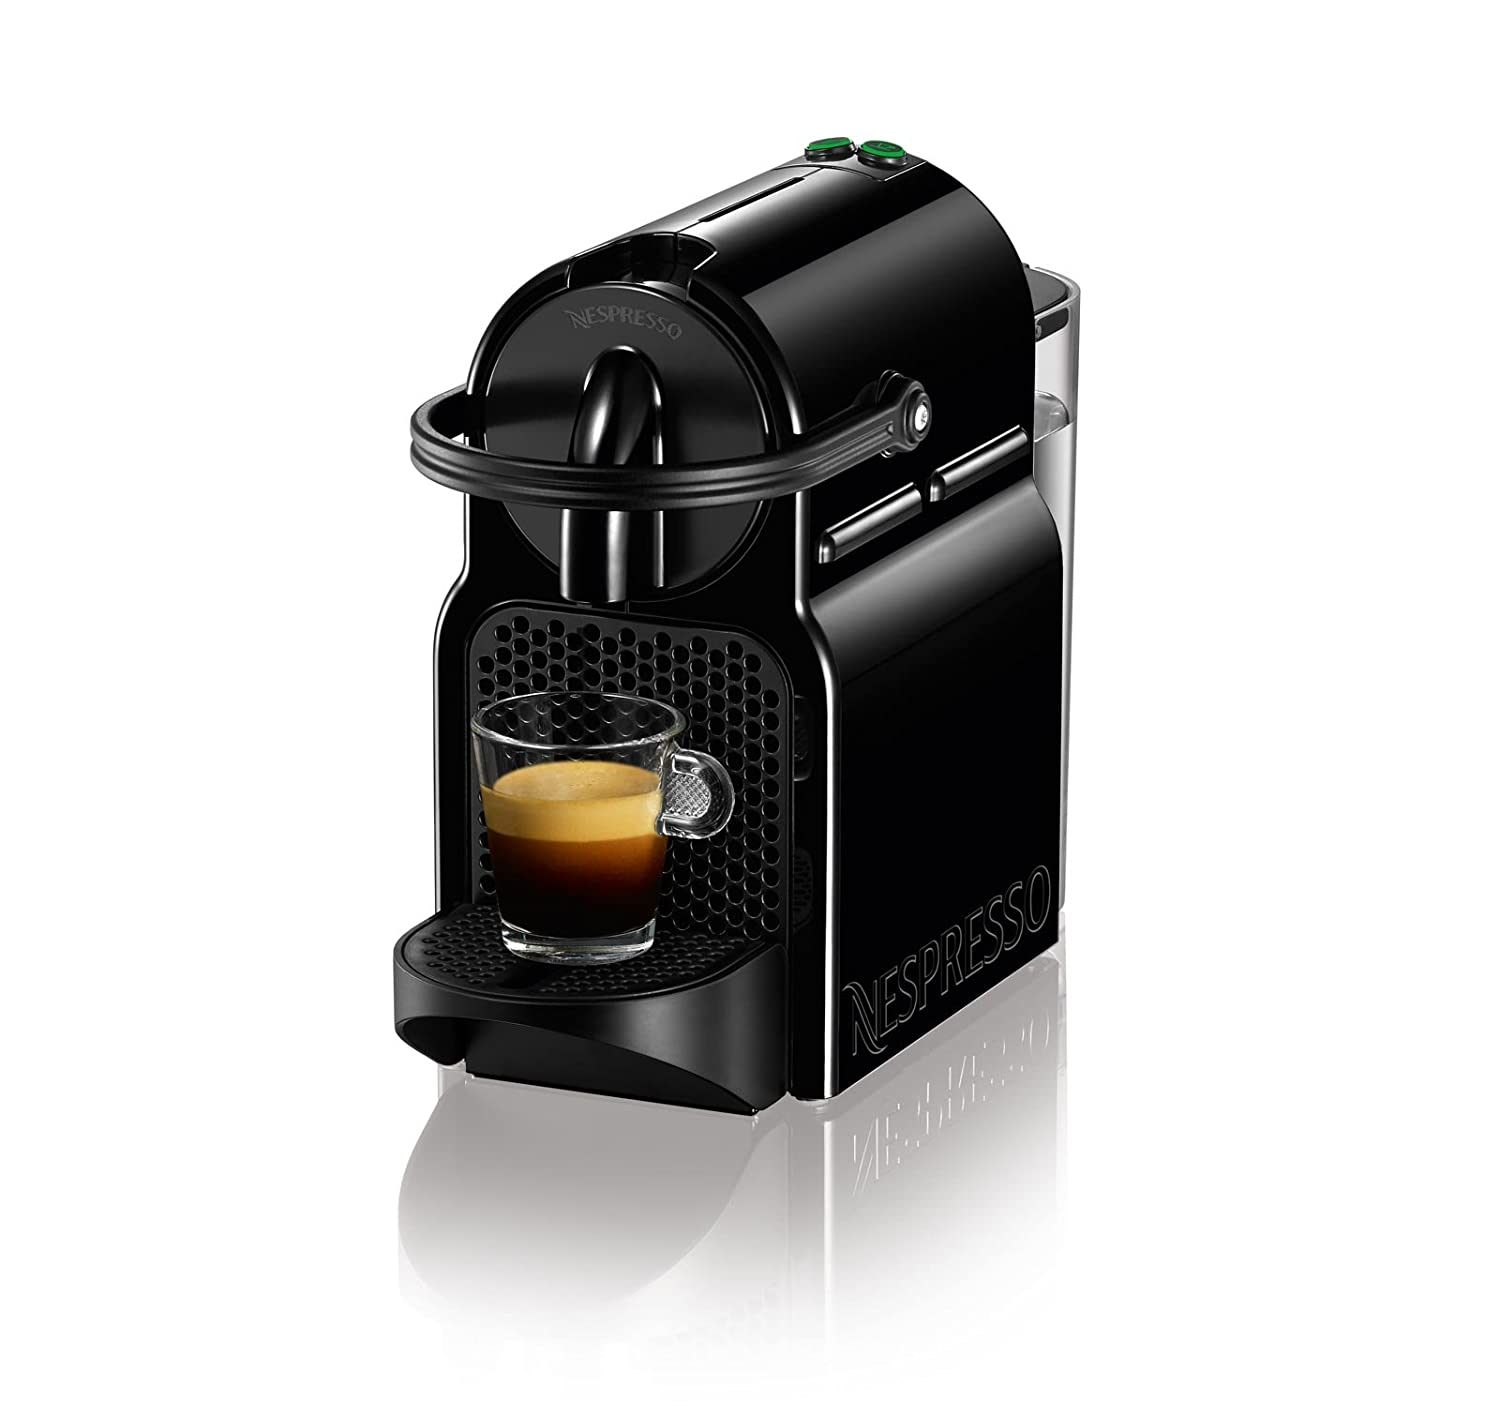 Inissia Maker Espresso Coffee Machine Nespresso Best Latte Kitchen Office Home